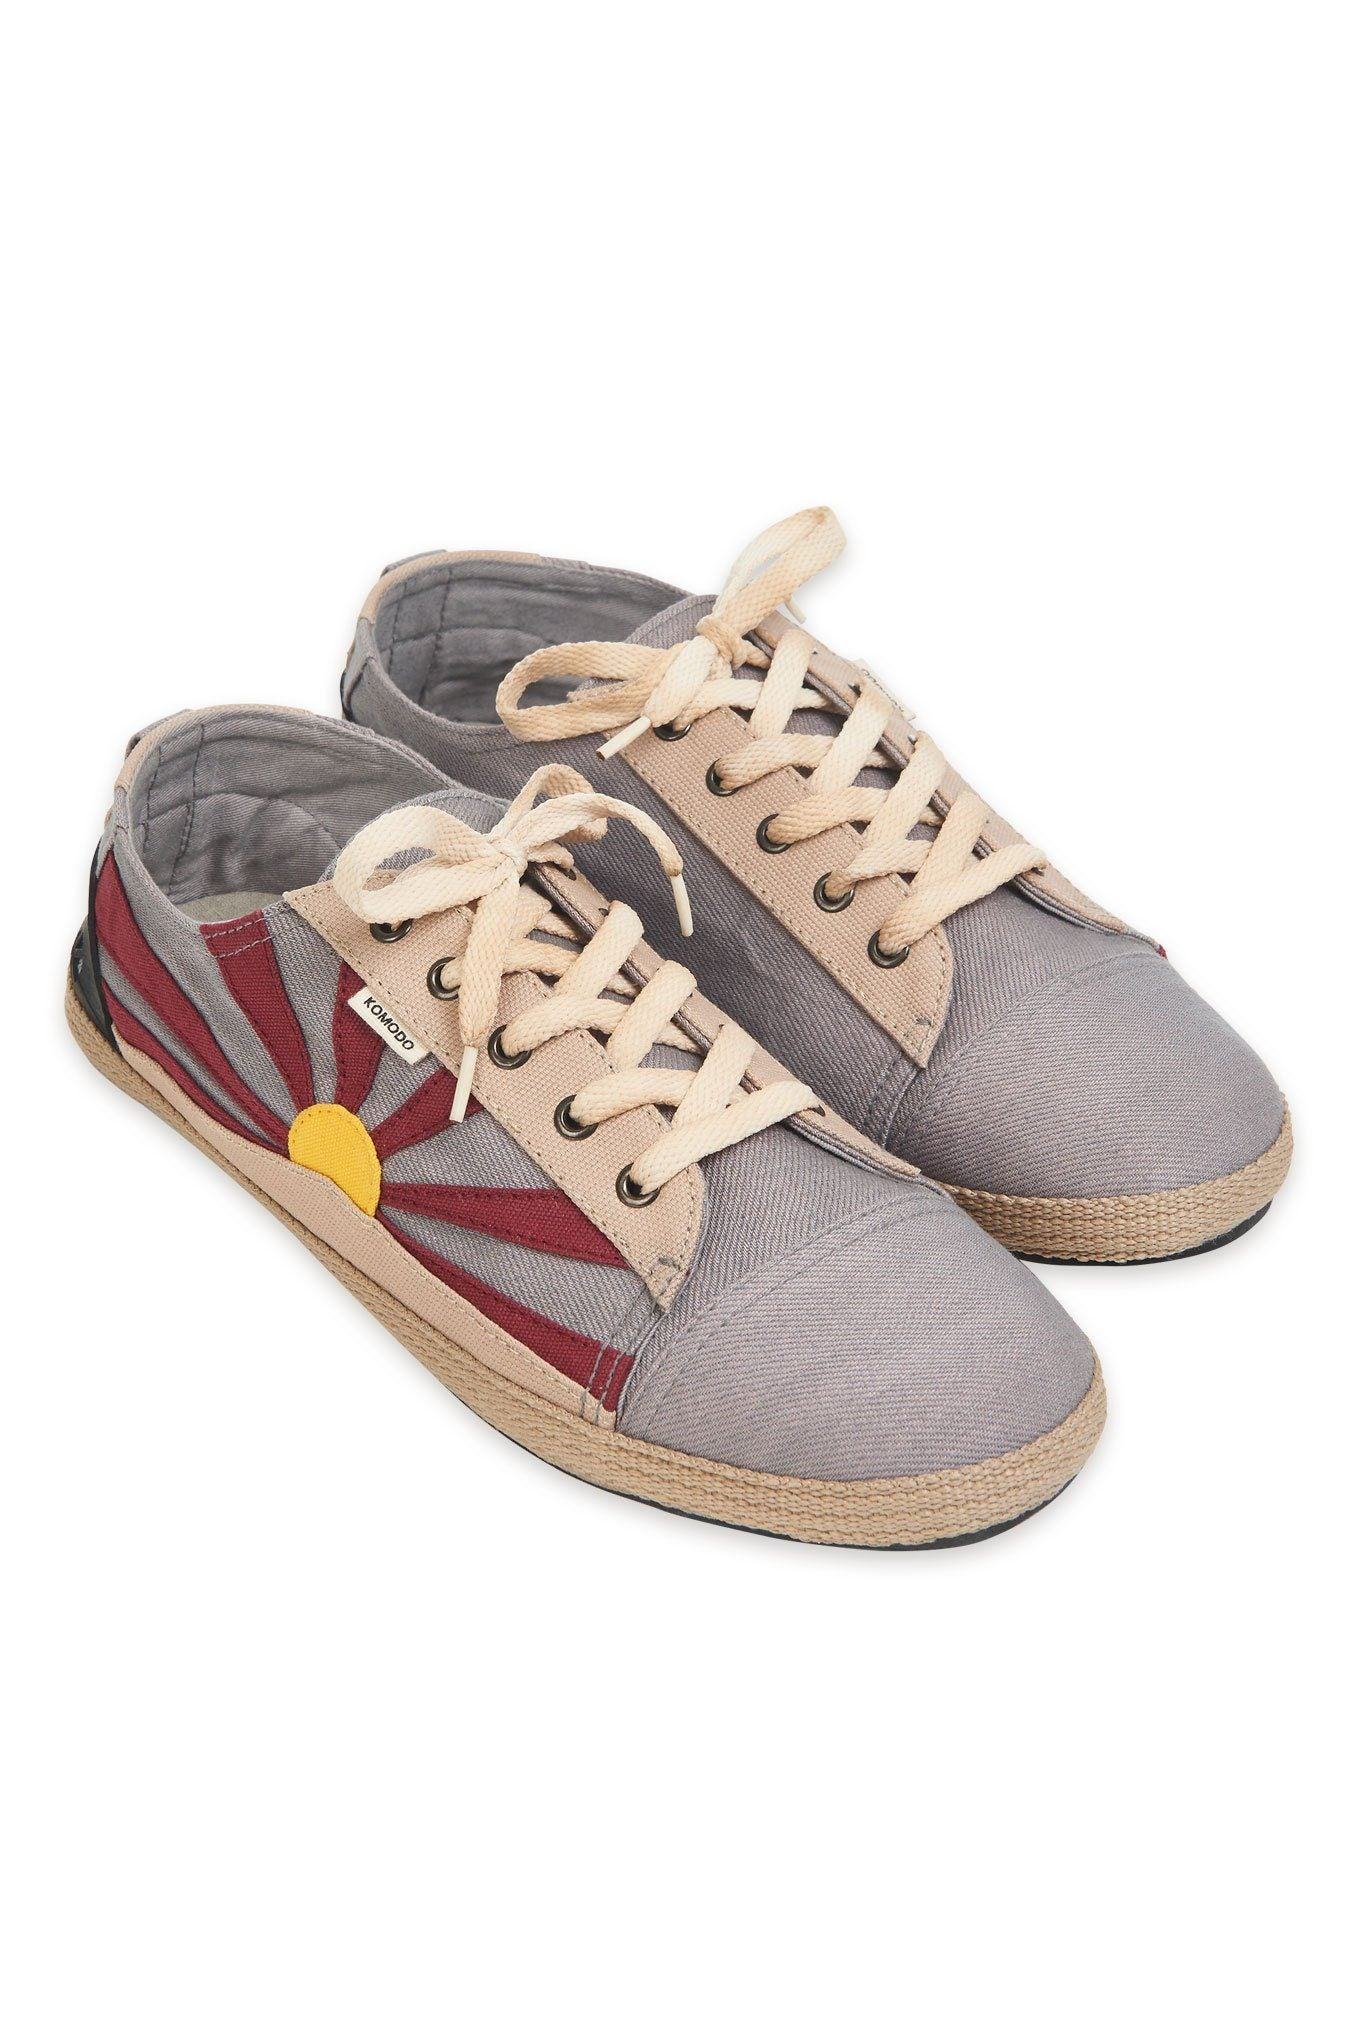 Shoes - FREE TIBET Womens Shoes Grey